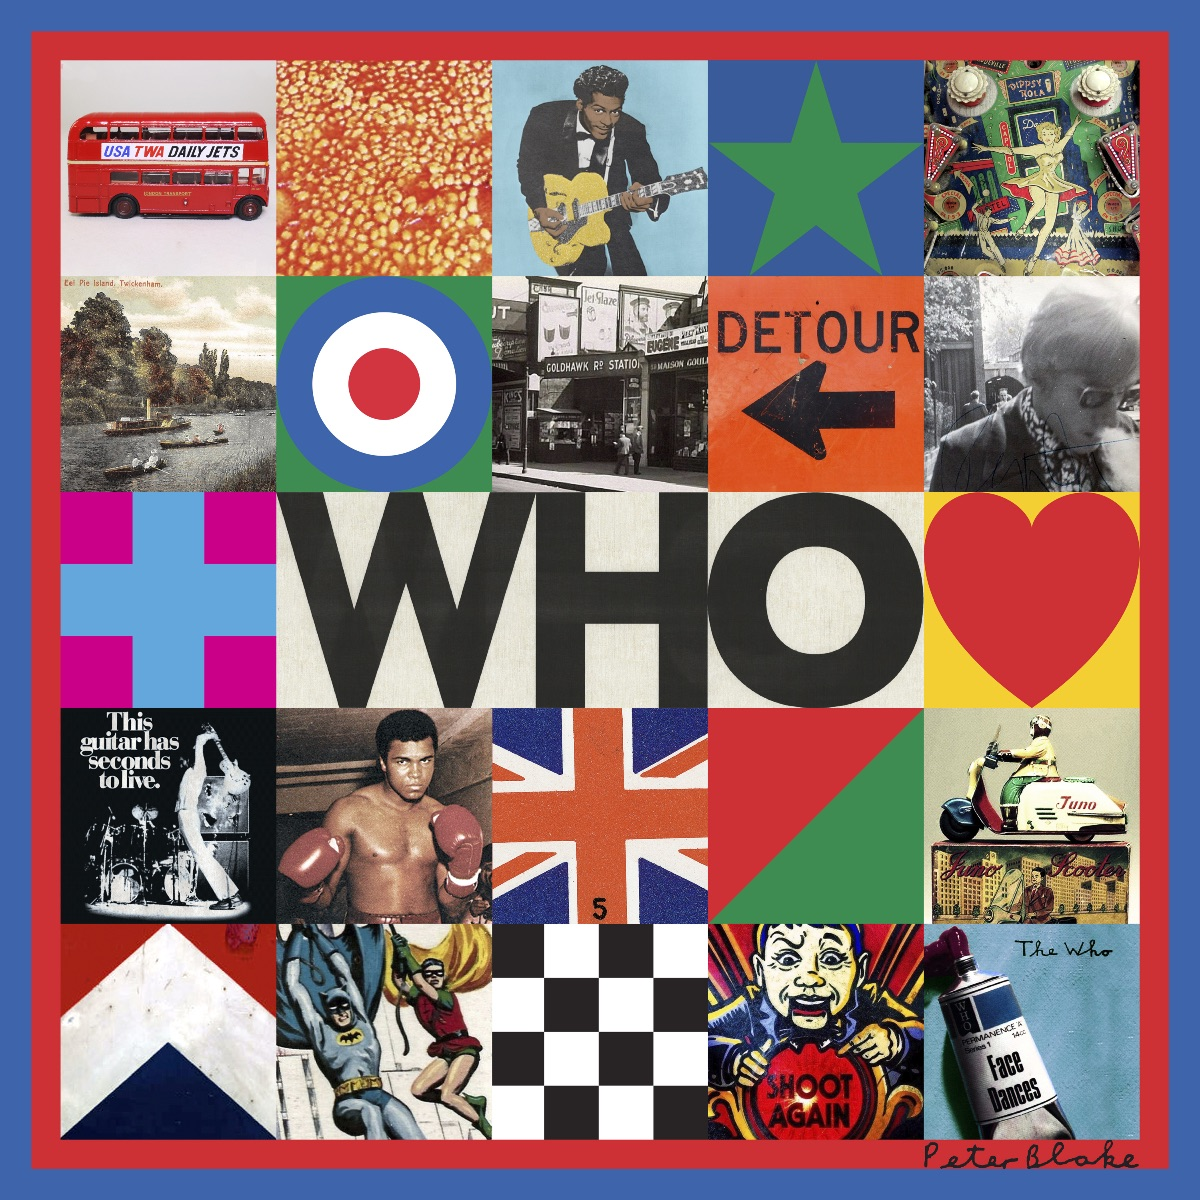 THE WHO 'WHO' BRAND NEW ALBUM FROM THE LEGENDARY ROCK BAND RELEASED 22NDNOVEMBER 2019  ON POLYDOR RECORDS